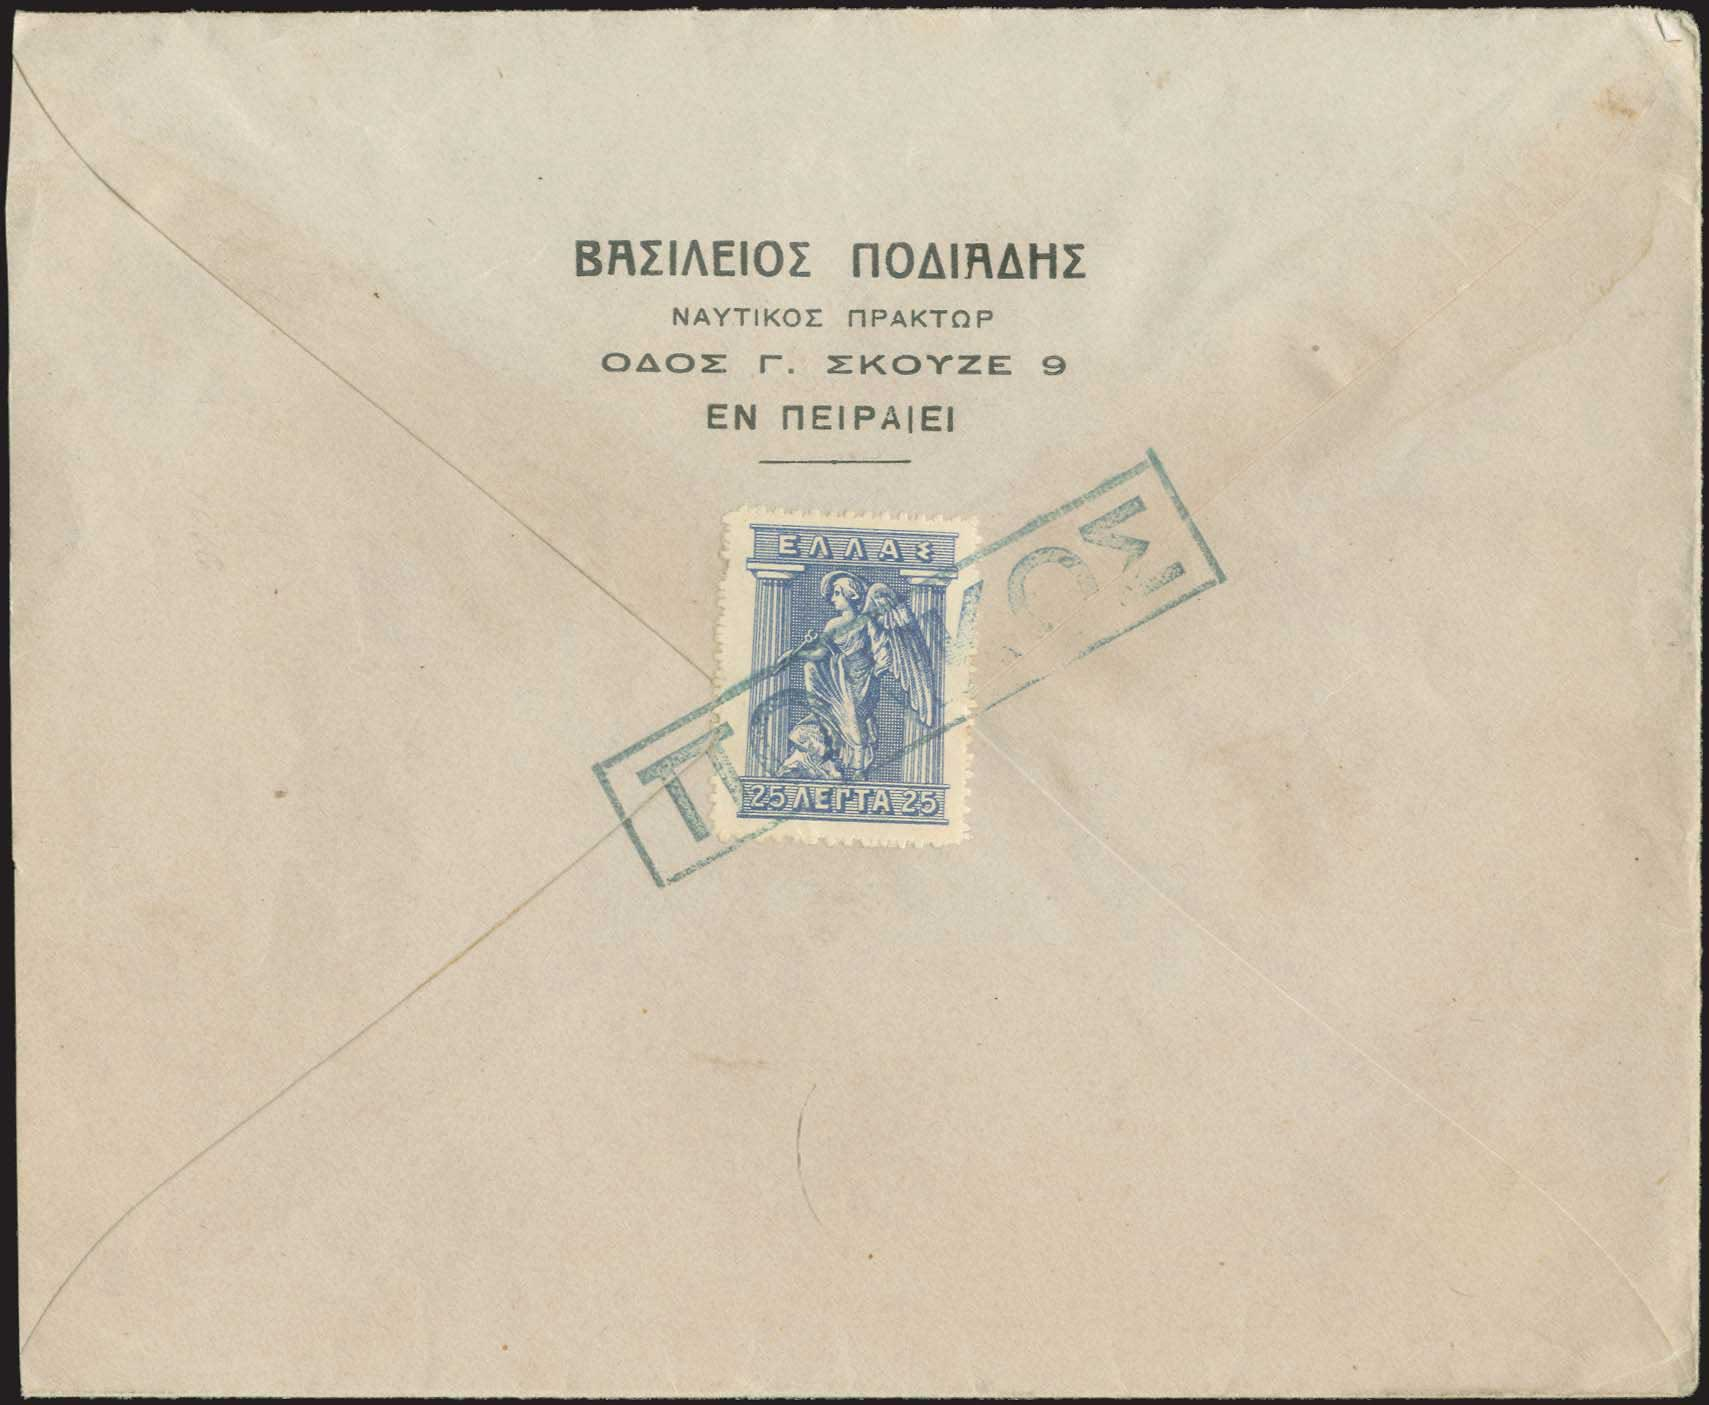 Lot 4287 - -  POSTMARKS & CANCELLATIONS maritime cancellations -  A. Karamitsos Postal & Live Internet Auction 663 (Part B) General Philatelic Auction